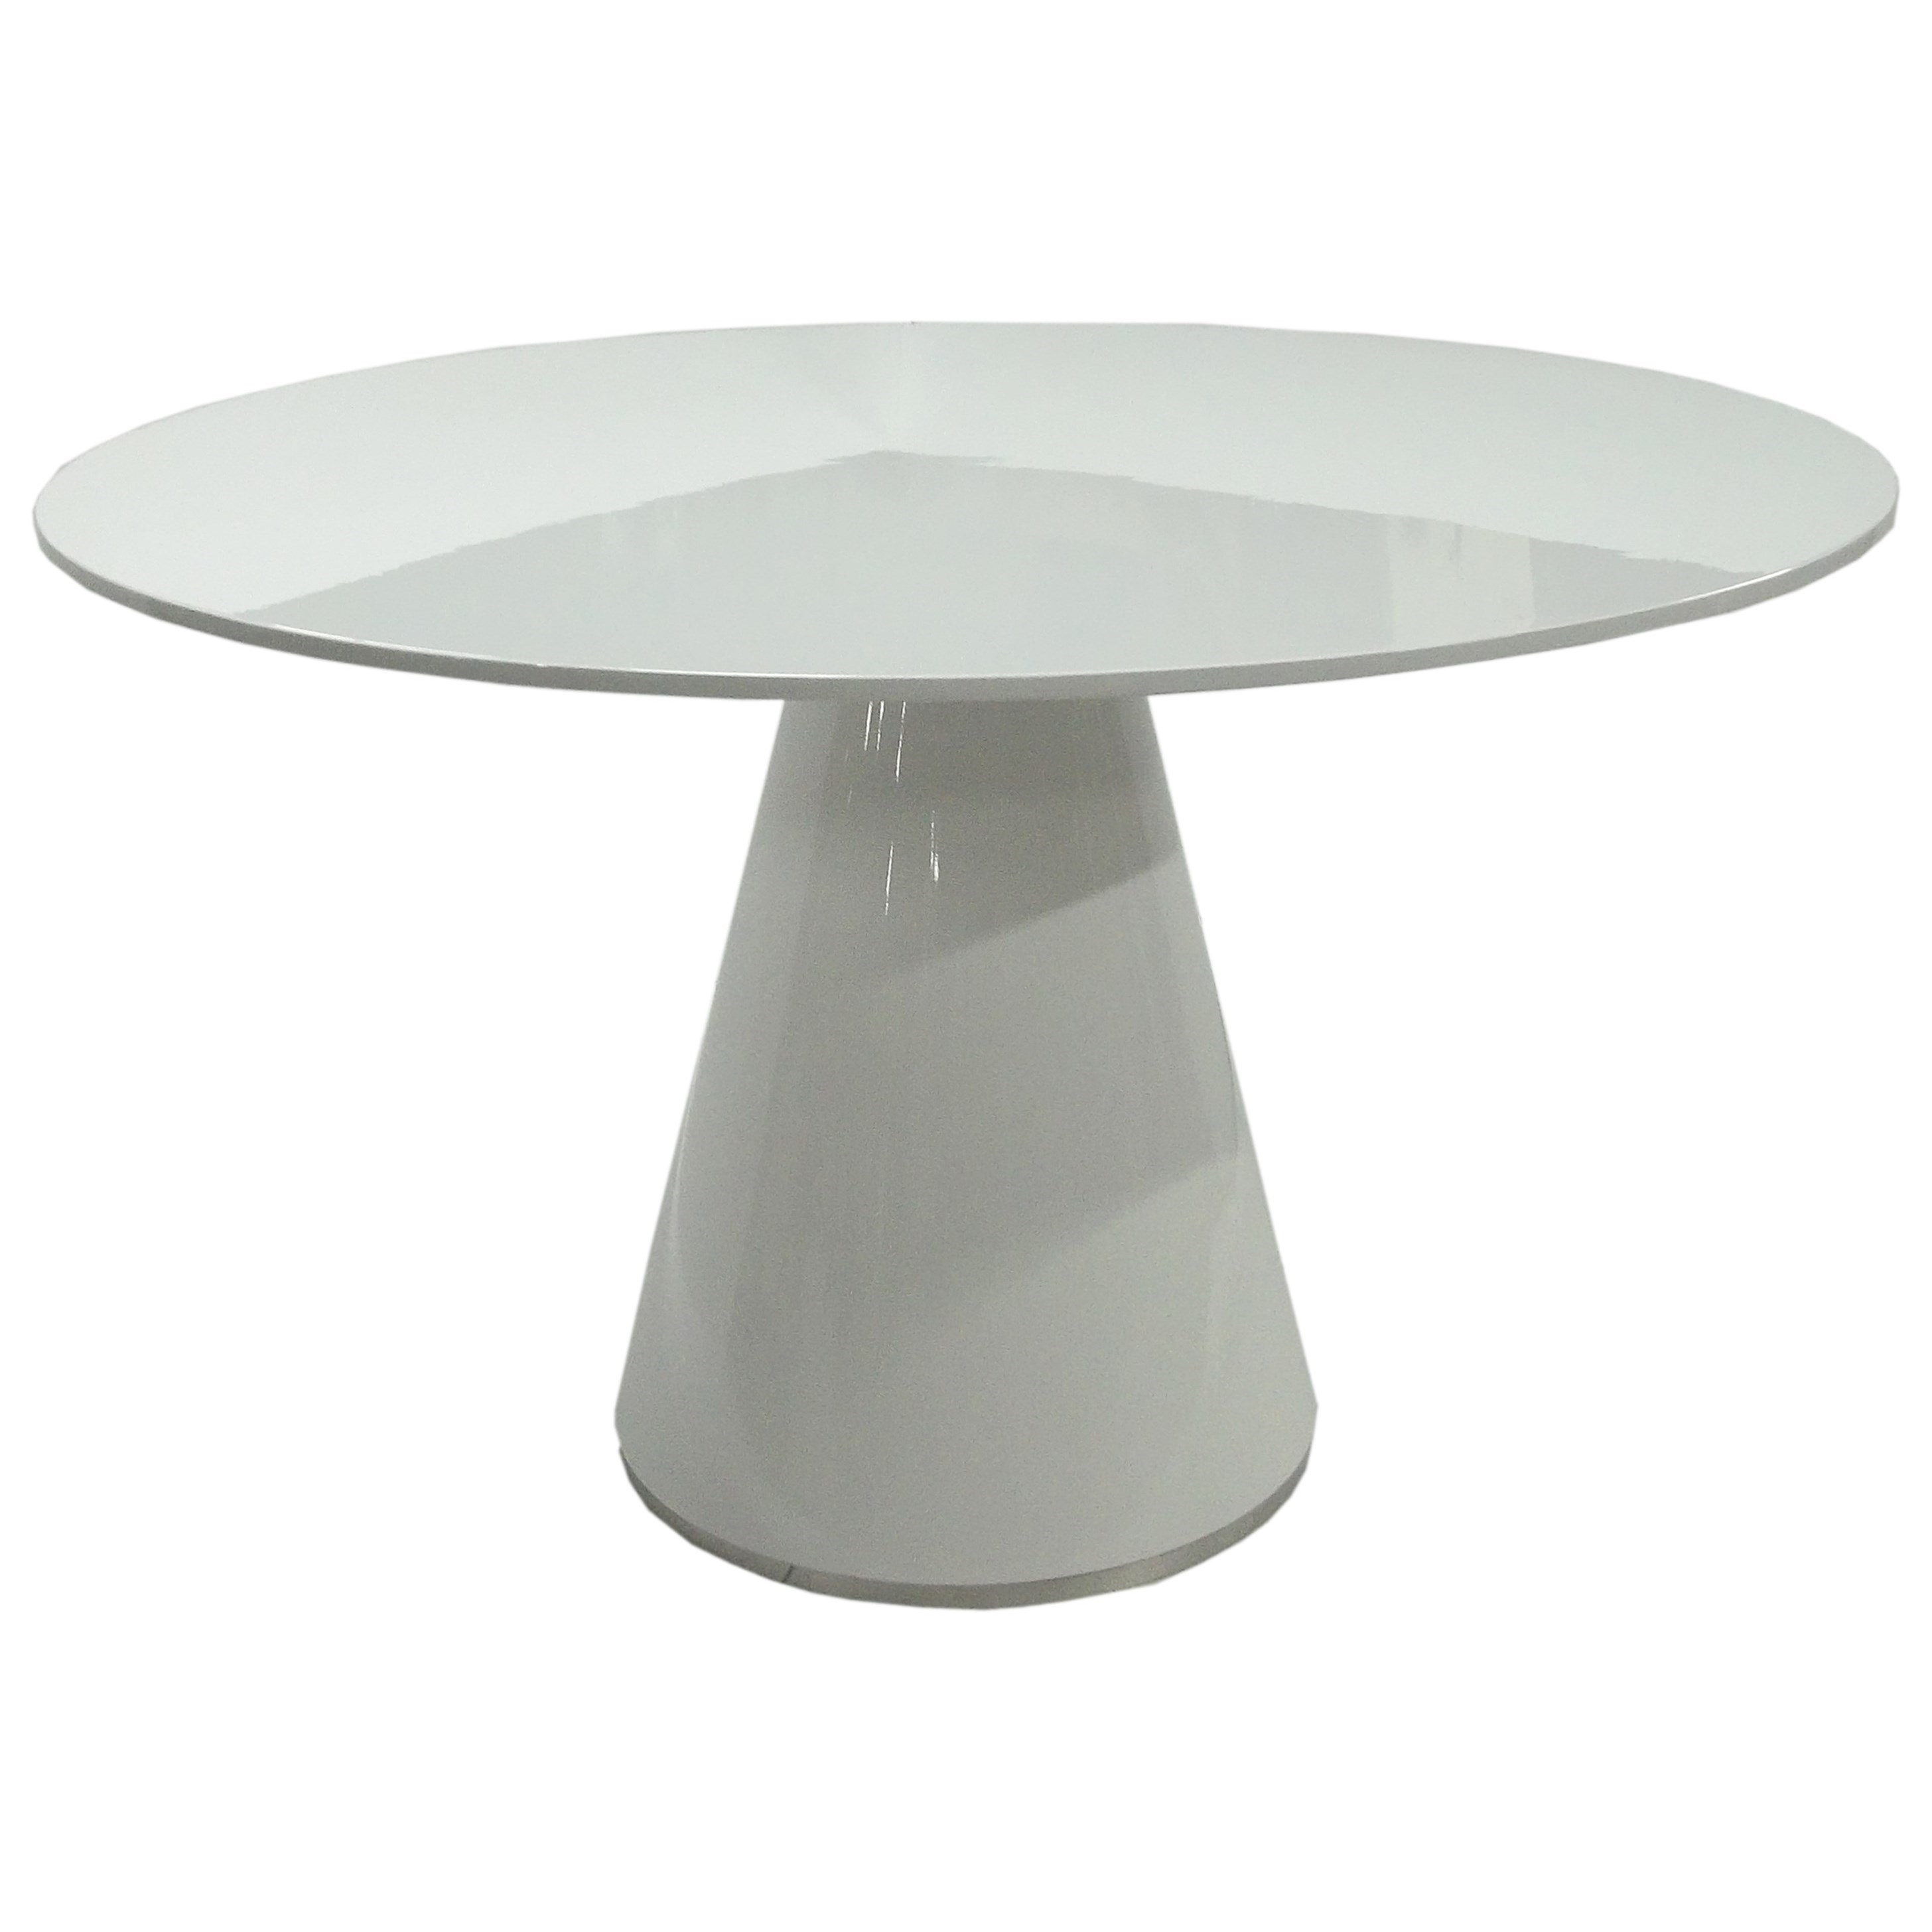 Otago Dining Table Round at Sadler's Home Furnishings